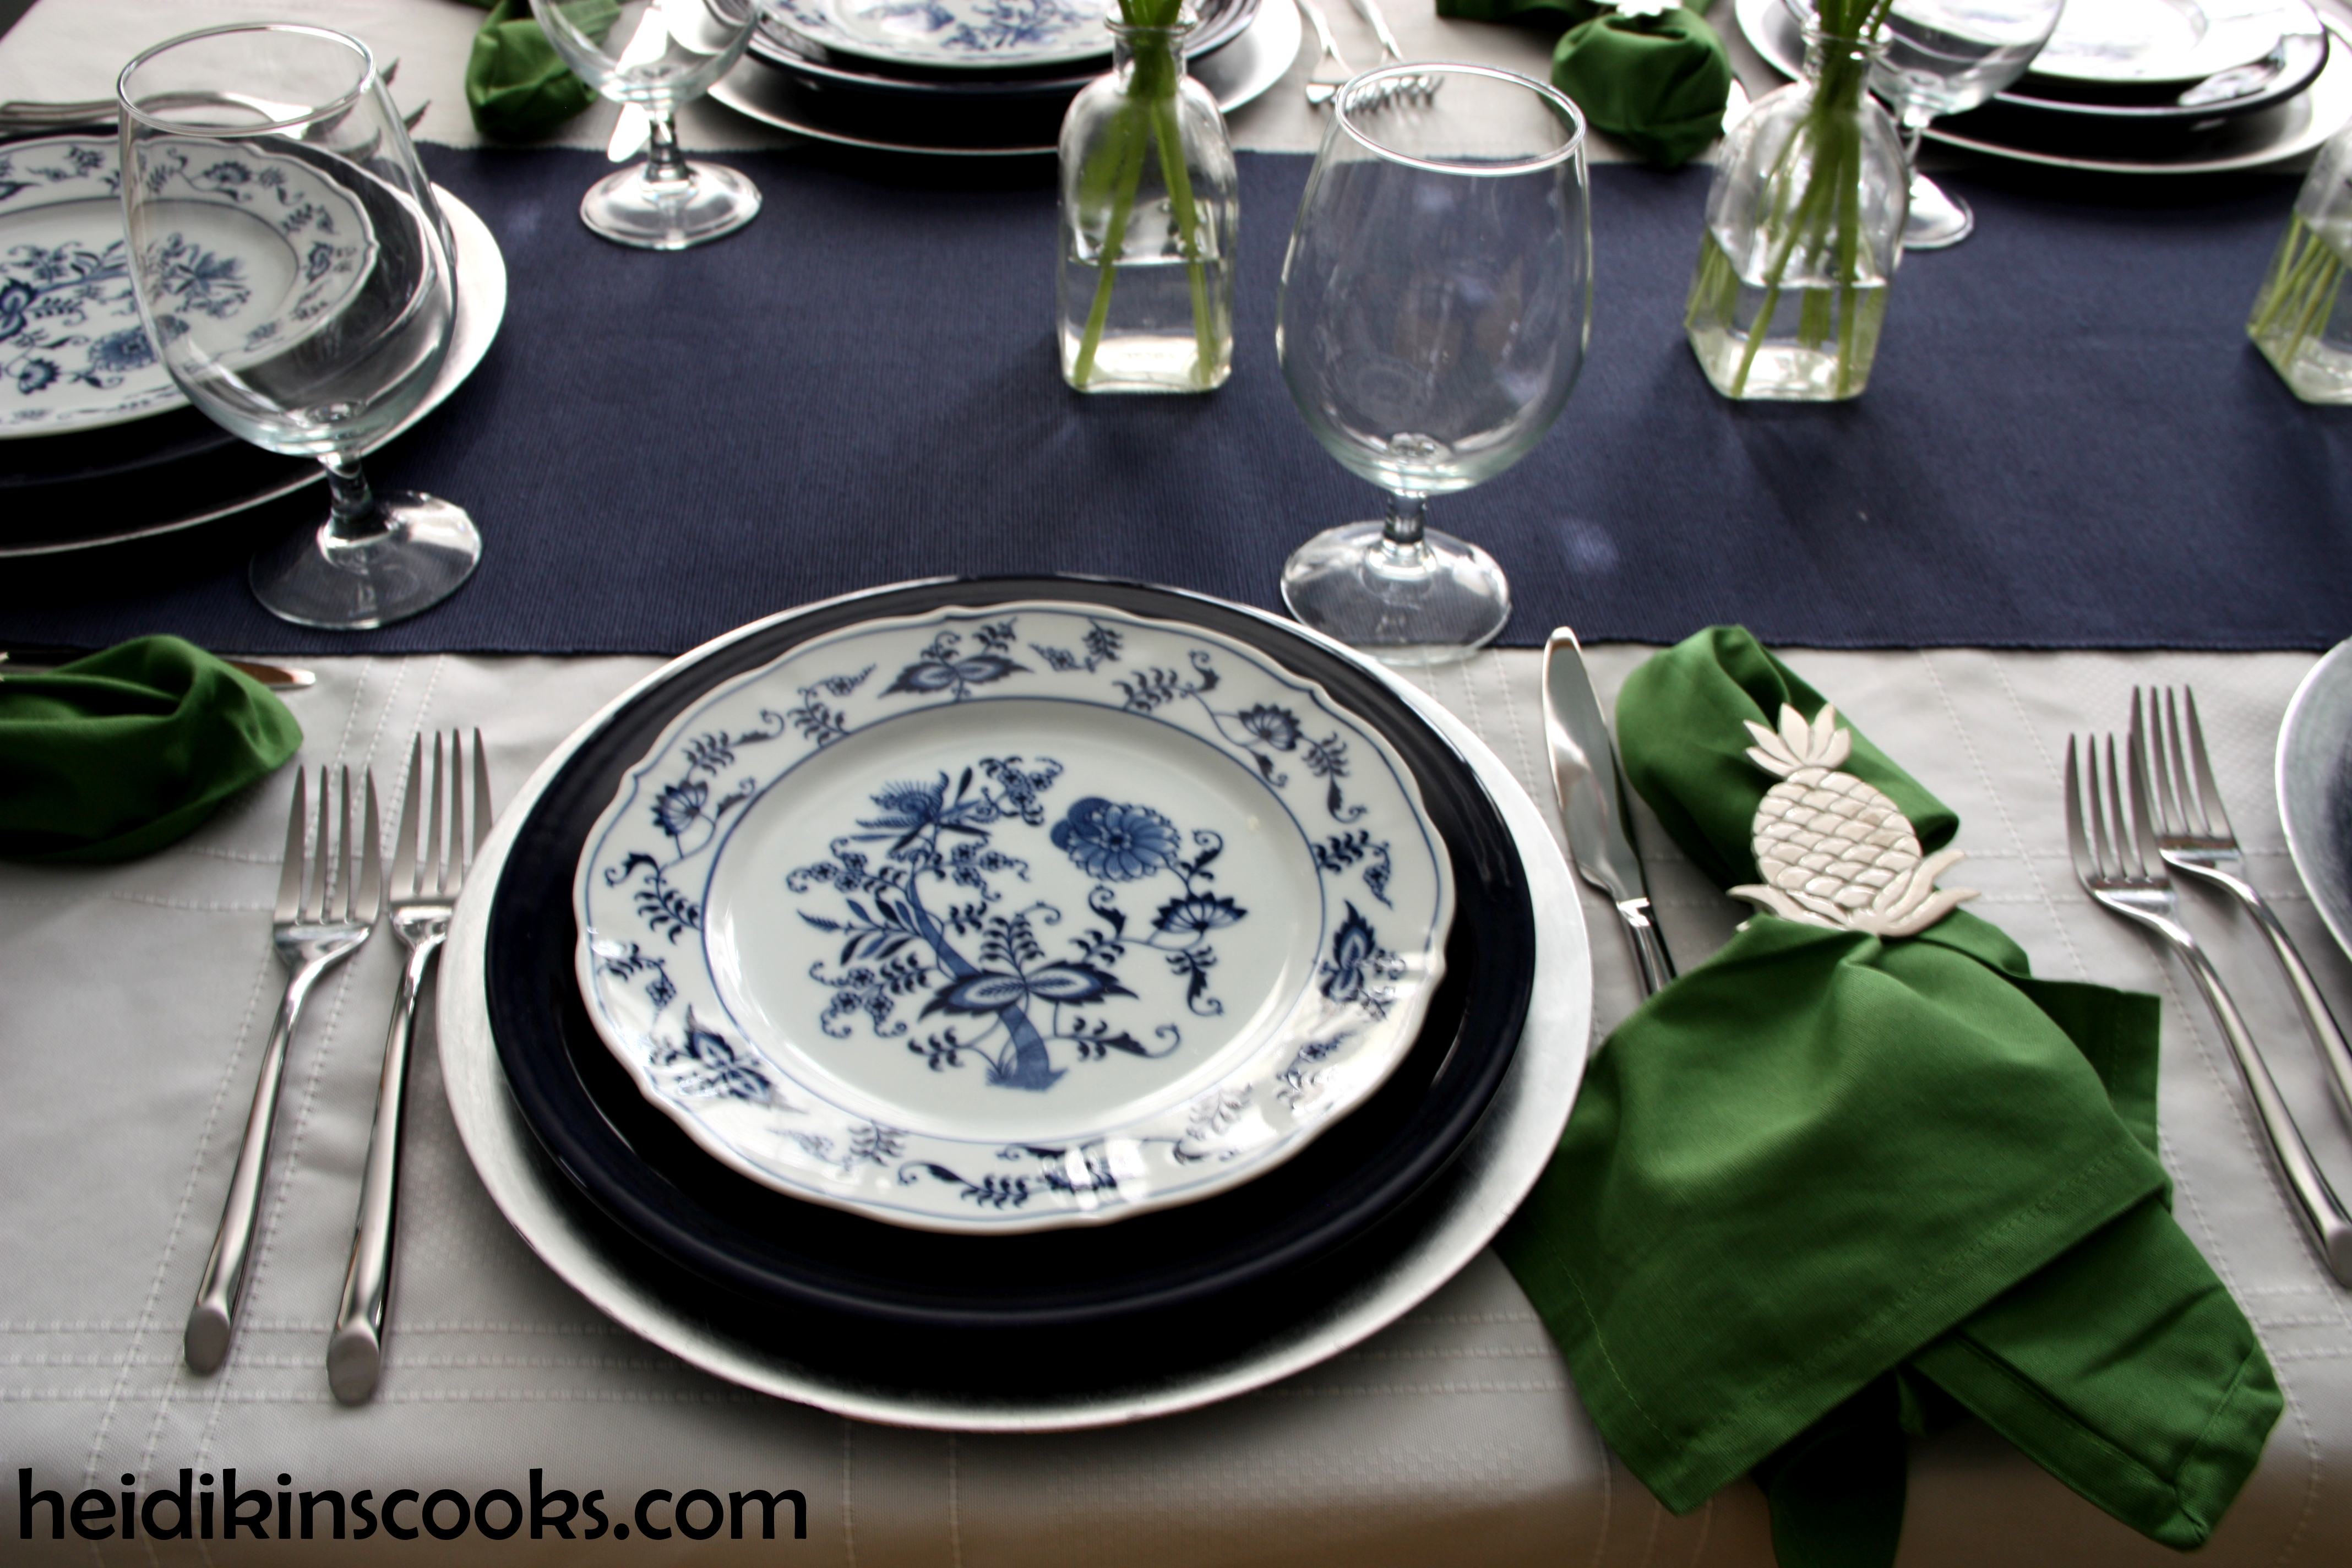 heidikinscooks_Blue Danube Fiesta table setting tablescape_january 2015 (2) : table setting for 2 - Pezcame.Com